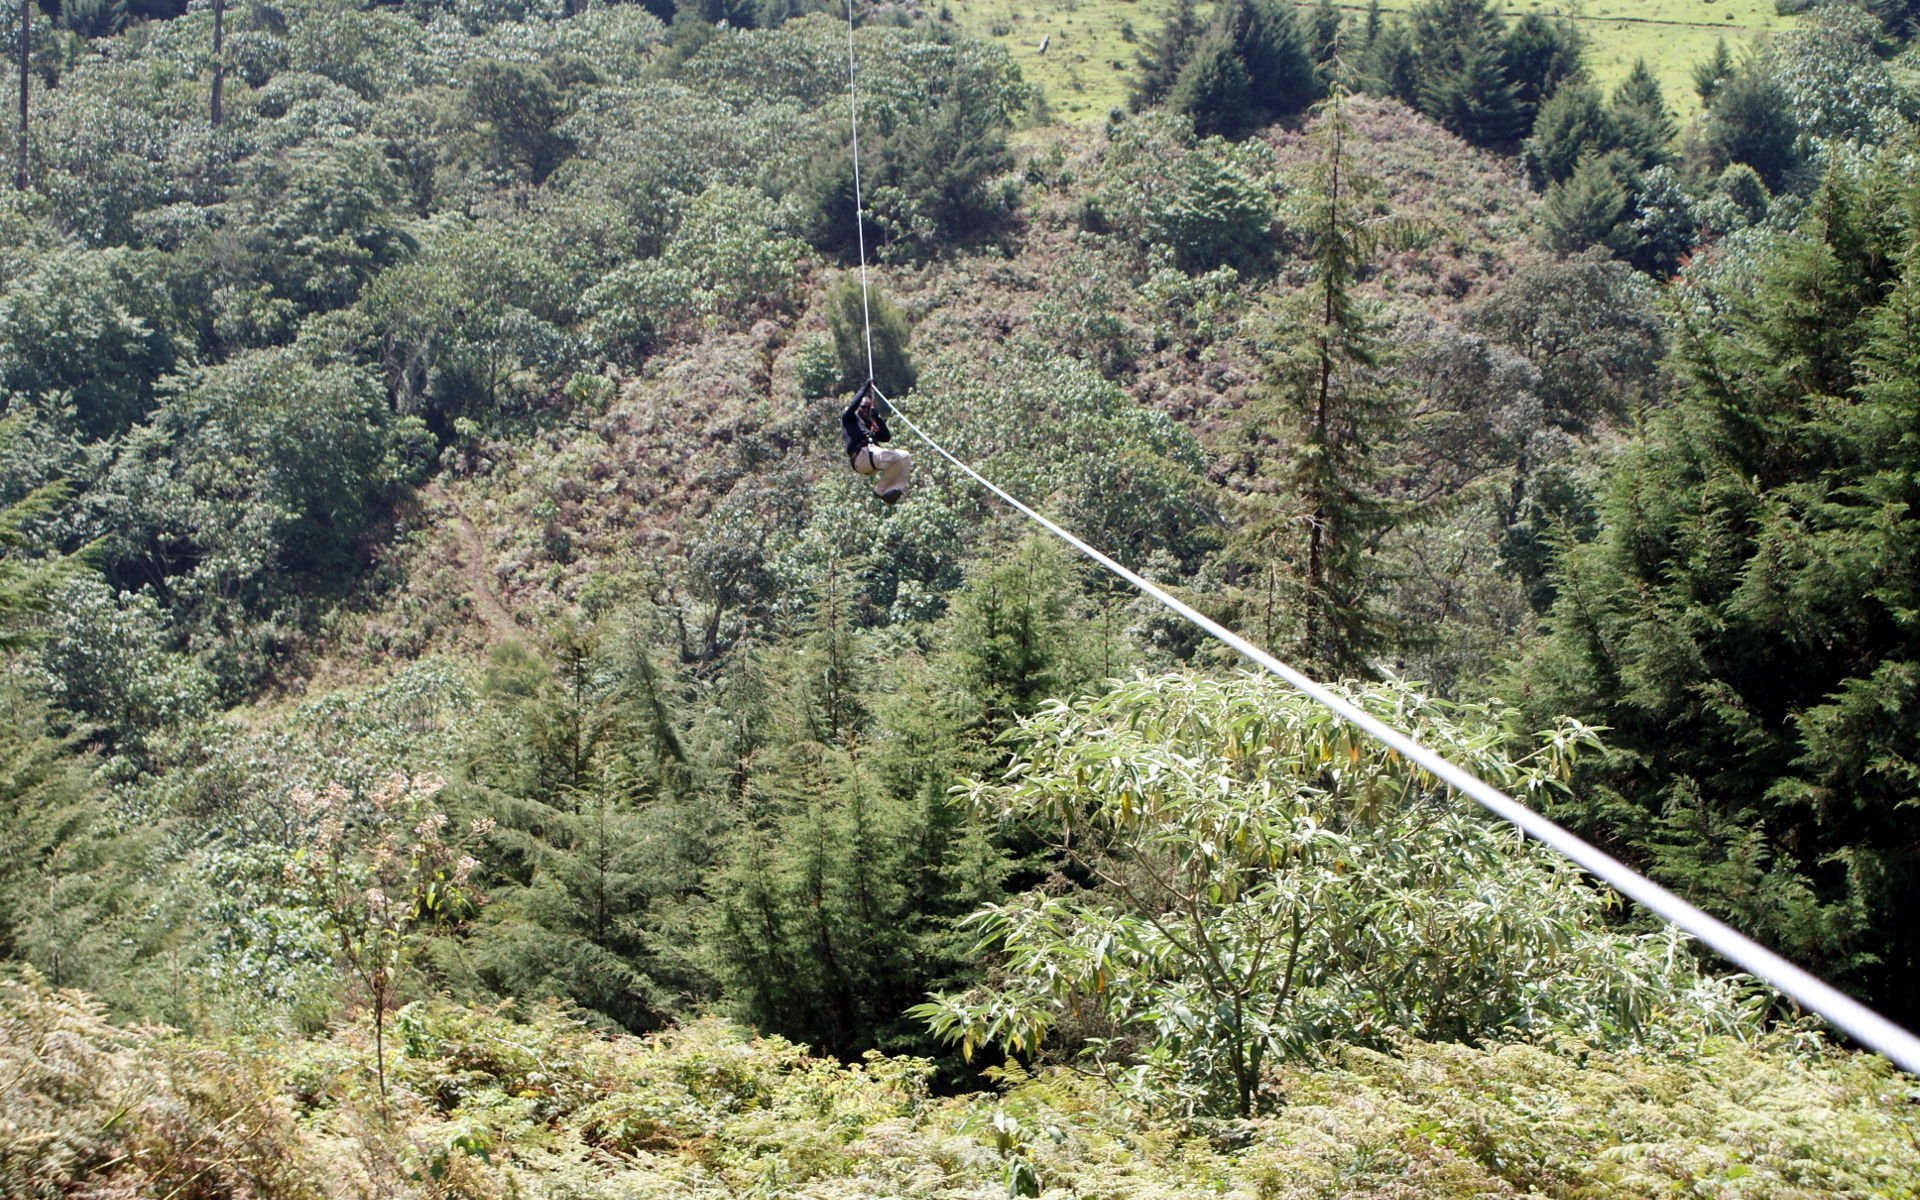 My experience ziplining at The Forest